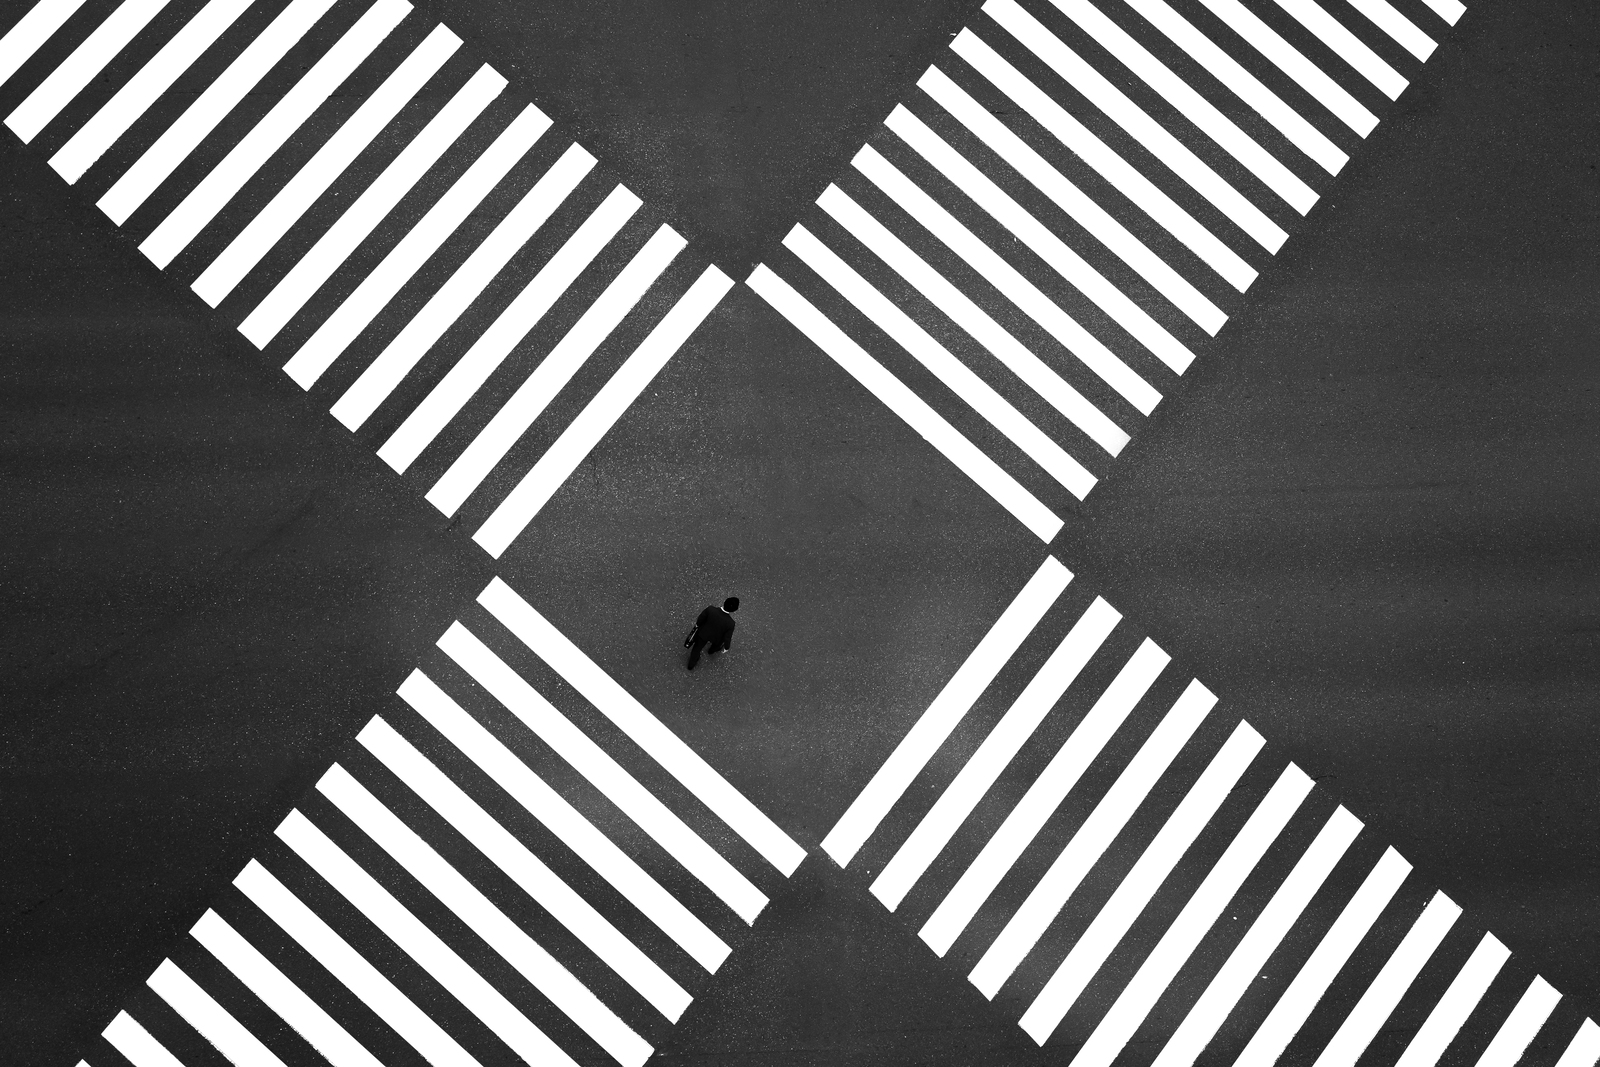 Aerial view of people crossing a big intersection in Ginza, Tokyo, Japan